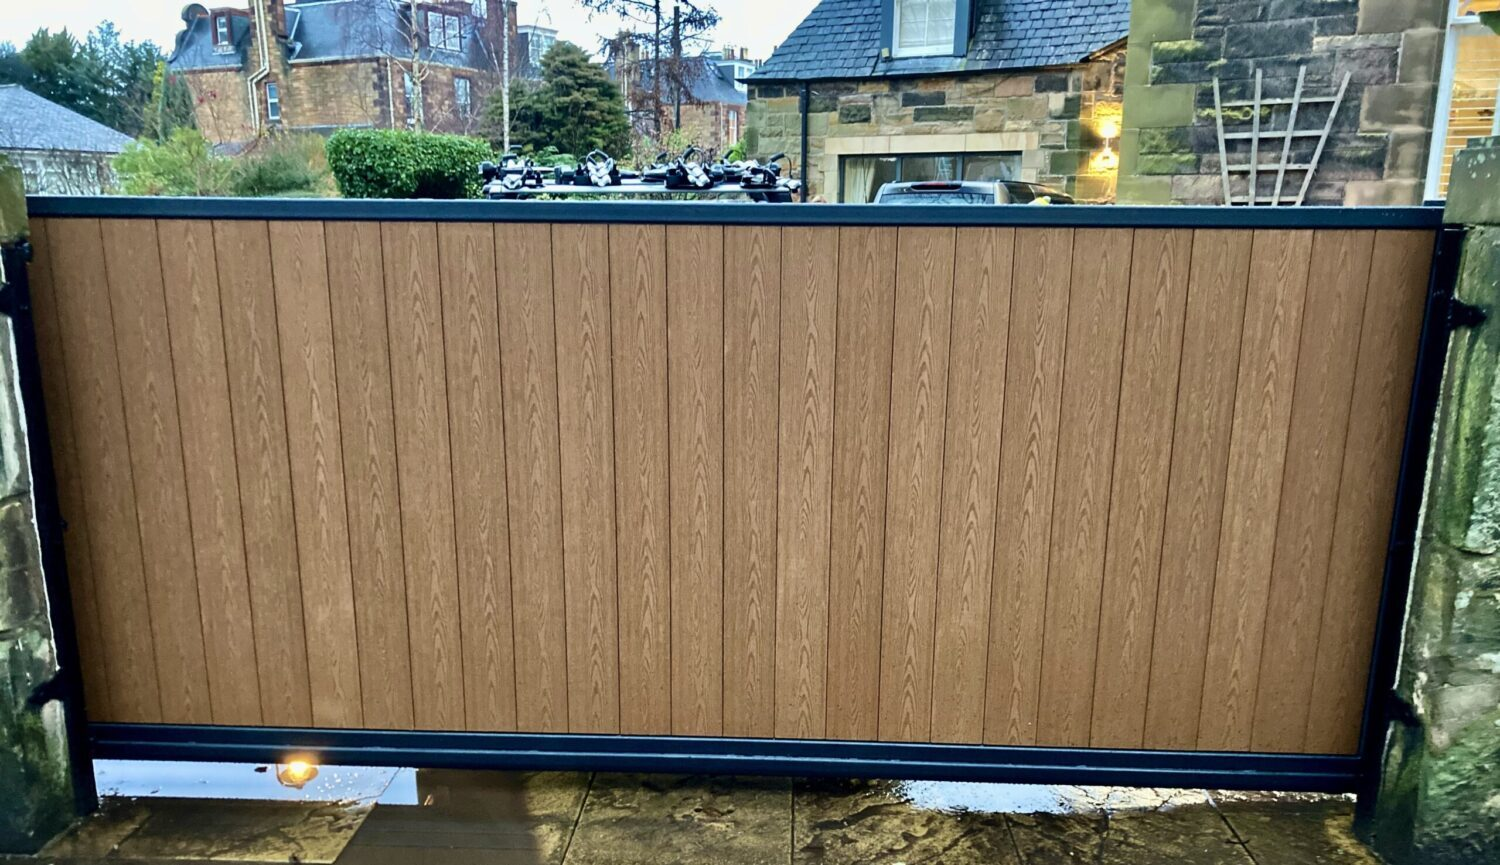 AES (SCOTLAND) LTD recently installed automatic metal framed composite infill sliding gate in Edinburgh